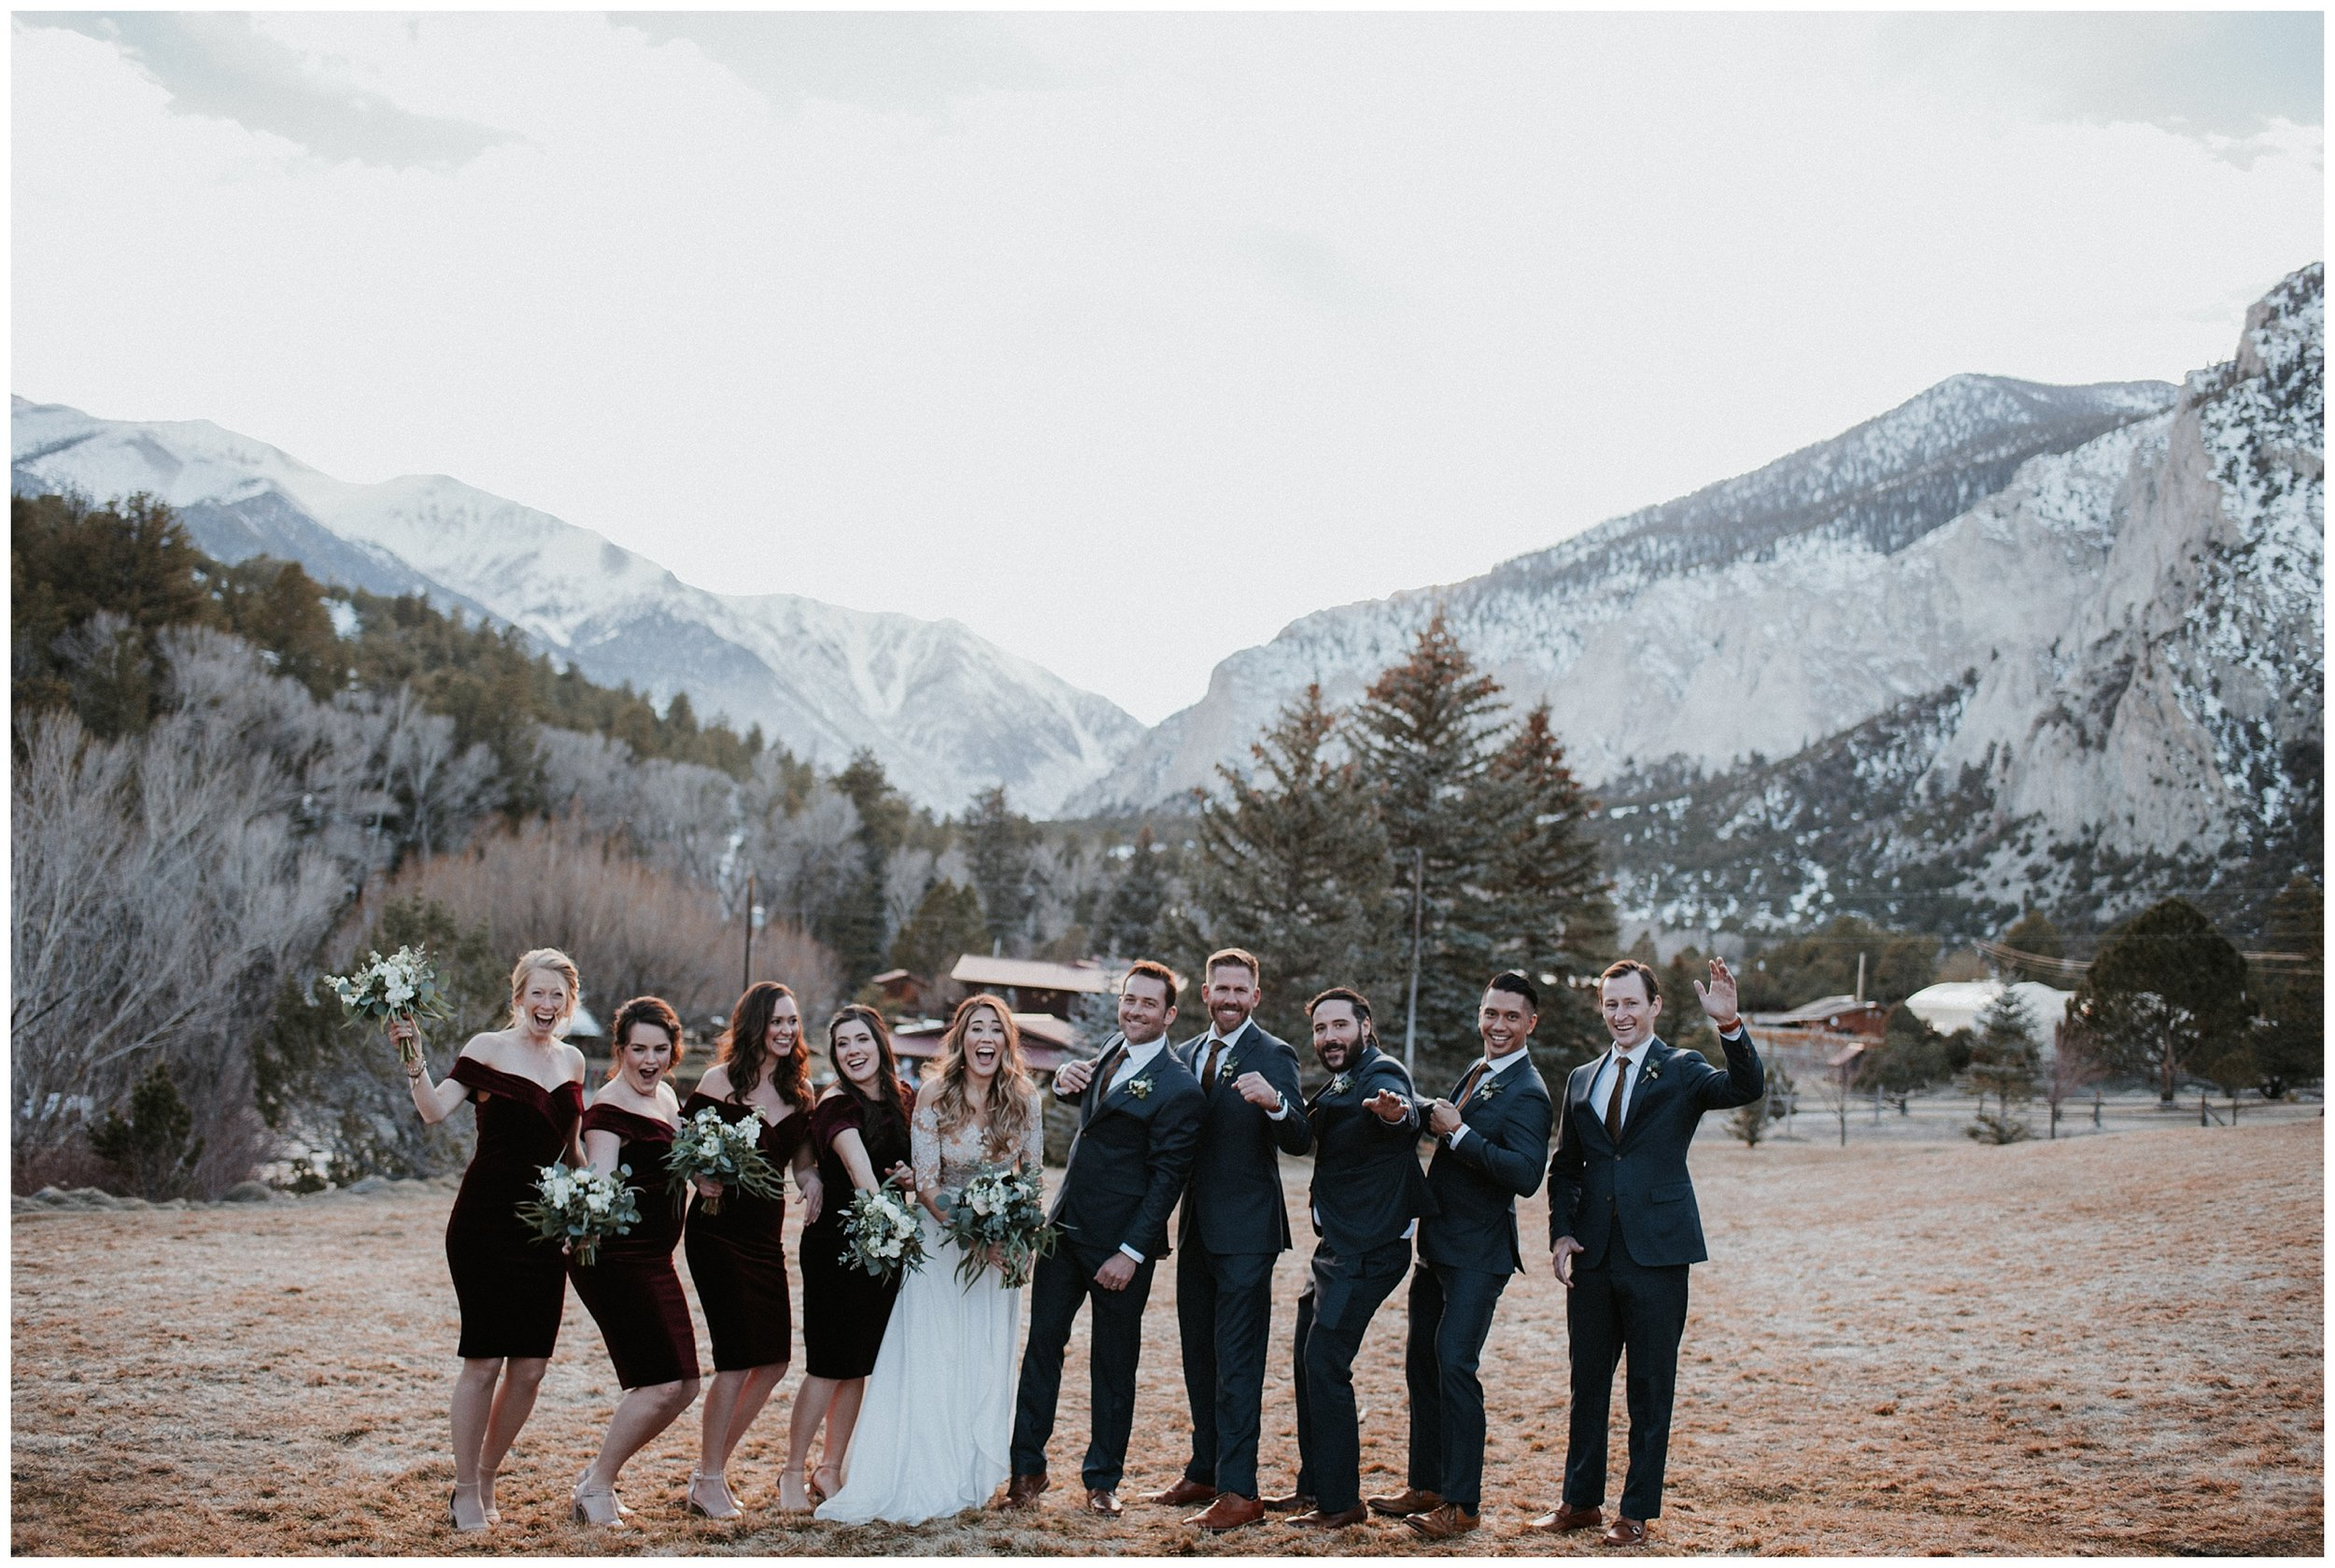 Spring wedding at Mt Princeton Hot Springs, Buena Vista Wedding, Buena Vista Wedding Photographer, Mt Princeton Wedding Photographer, Colorado Wedding Photographer, Denver Wedding Photographer, Denver Colorado Wedding Photographer, Mountain Wedding Photographer, Mountain Photographer, Colorado Engagement Photographer, Denver Engagement Photographer, Romantic Colorado Wedding, Winter Colorado Wedding, Small Colorado Wedding Photographer, Intimate Colorado Wedding Photographer, Colorado Wedding Videographer, Denver Wedding Videographer, Videographer Denver, illusion wedding dress, scarlet bridesmaids dresses, navy wedding suit